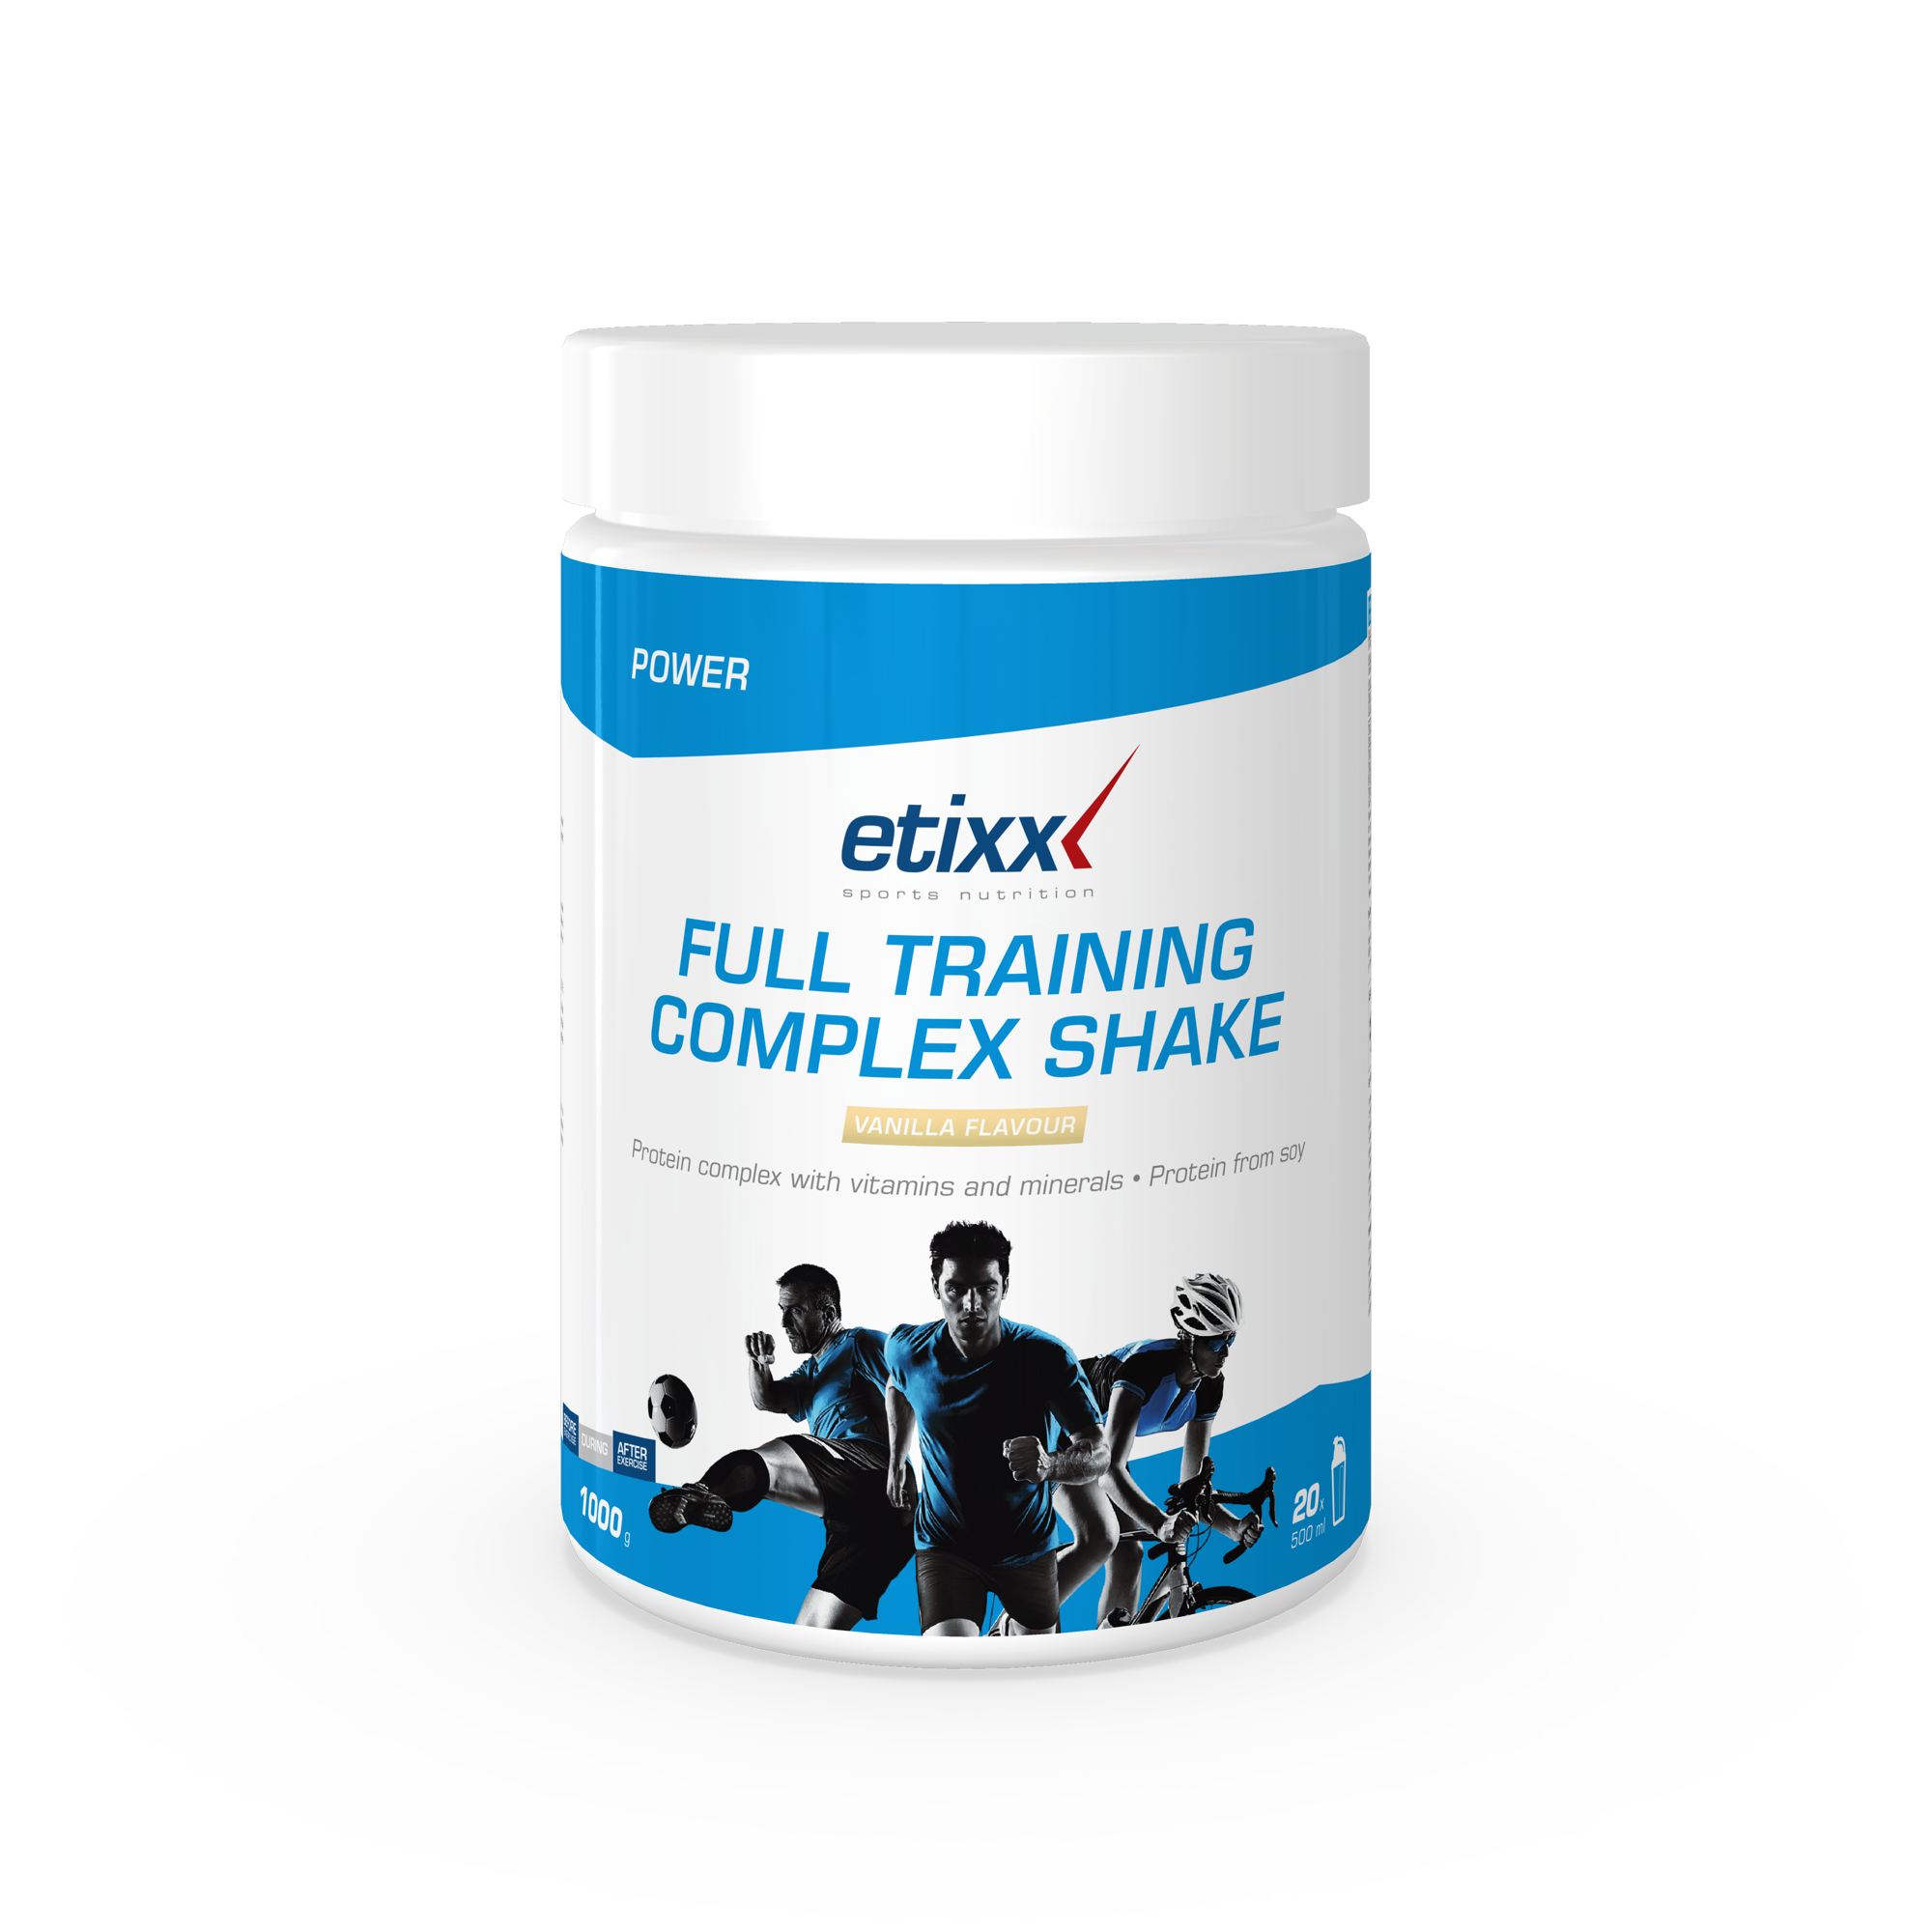 Full Training Complex Shake